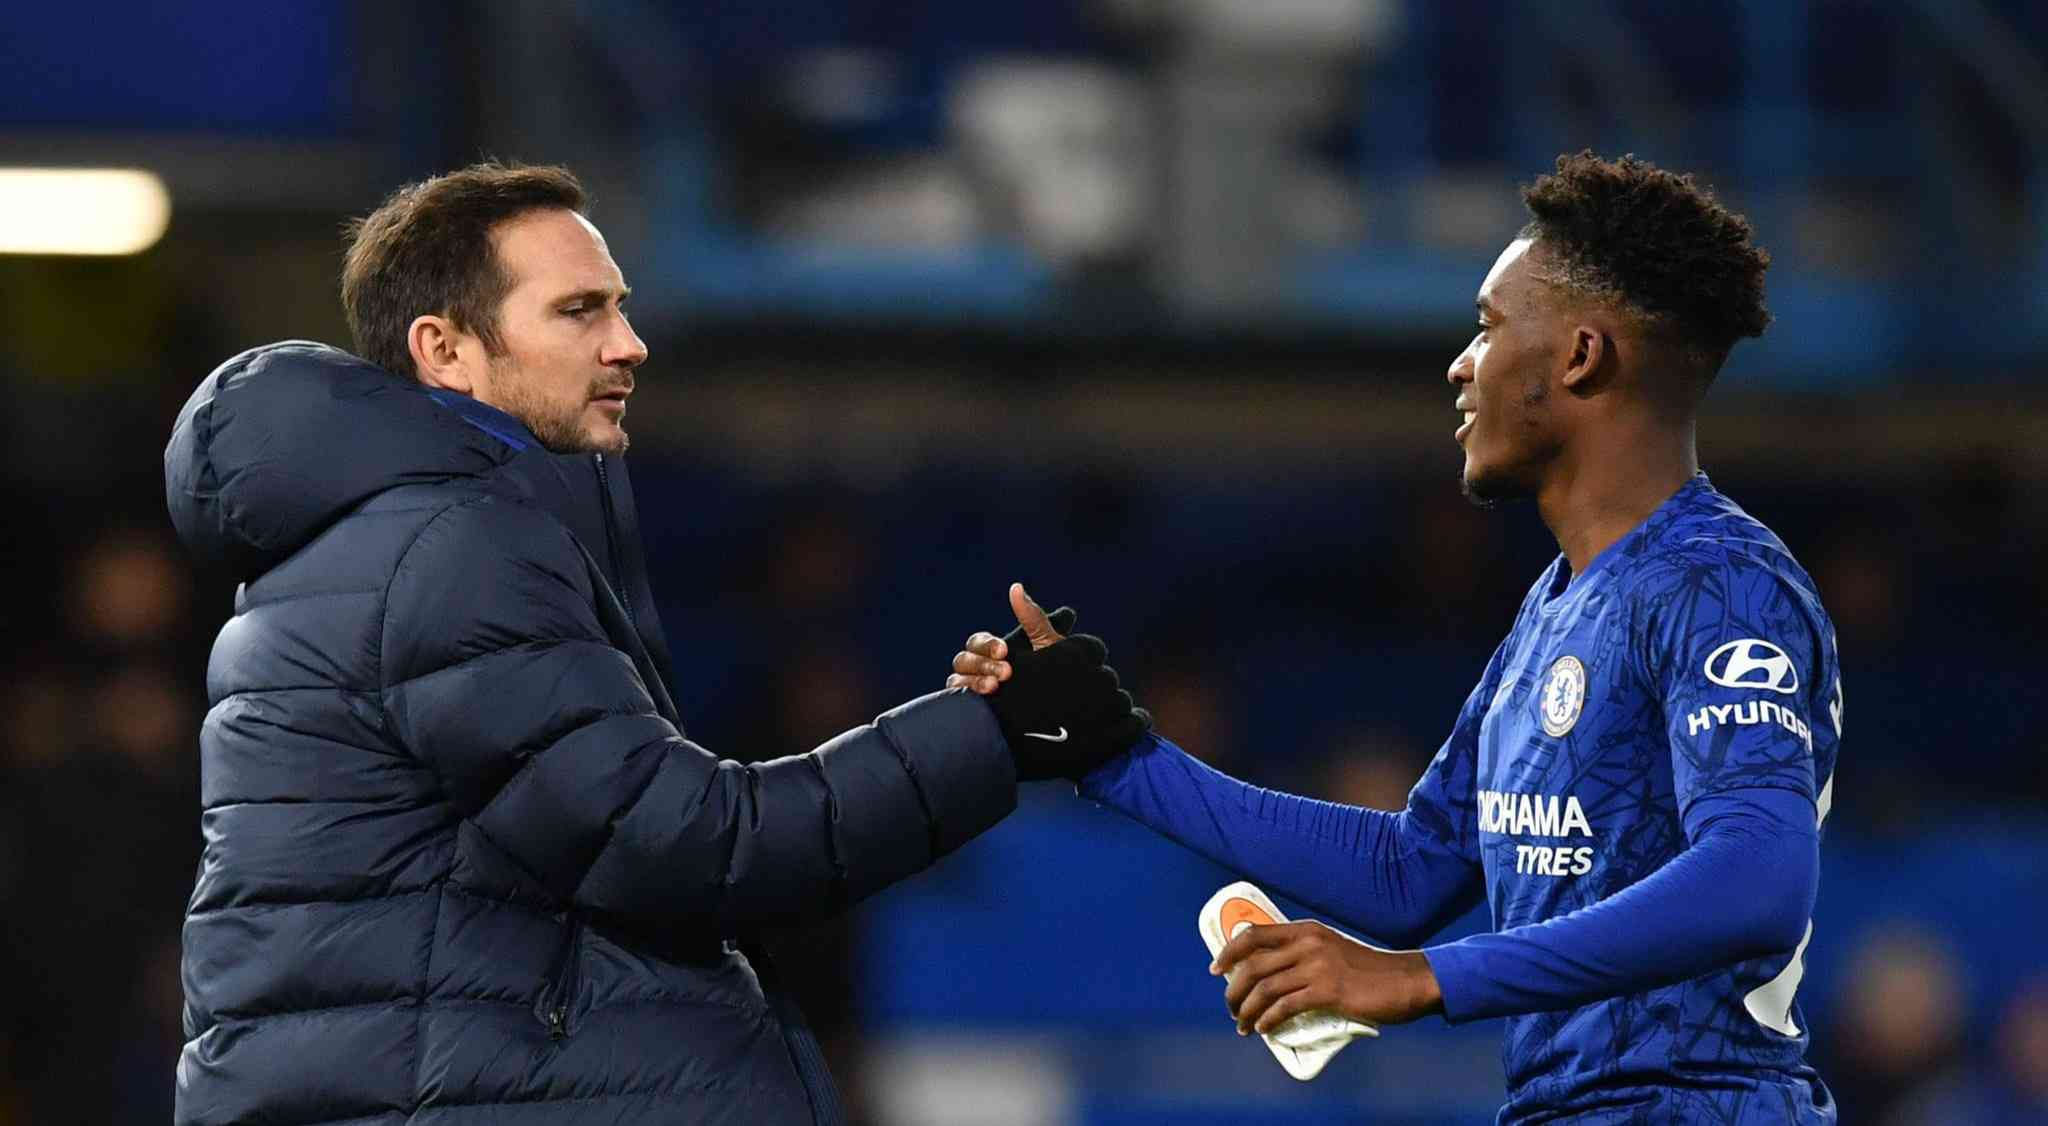 Hudson-Odoi to hold talks with Lampard & could leave Chelsea